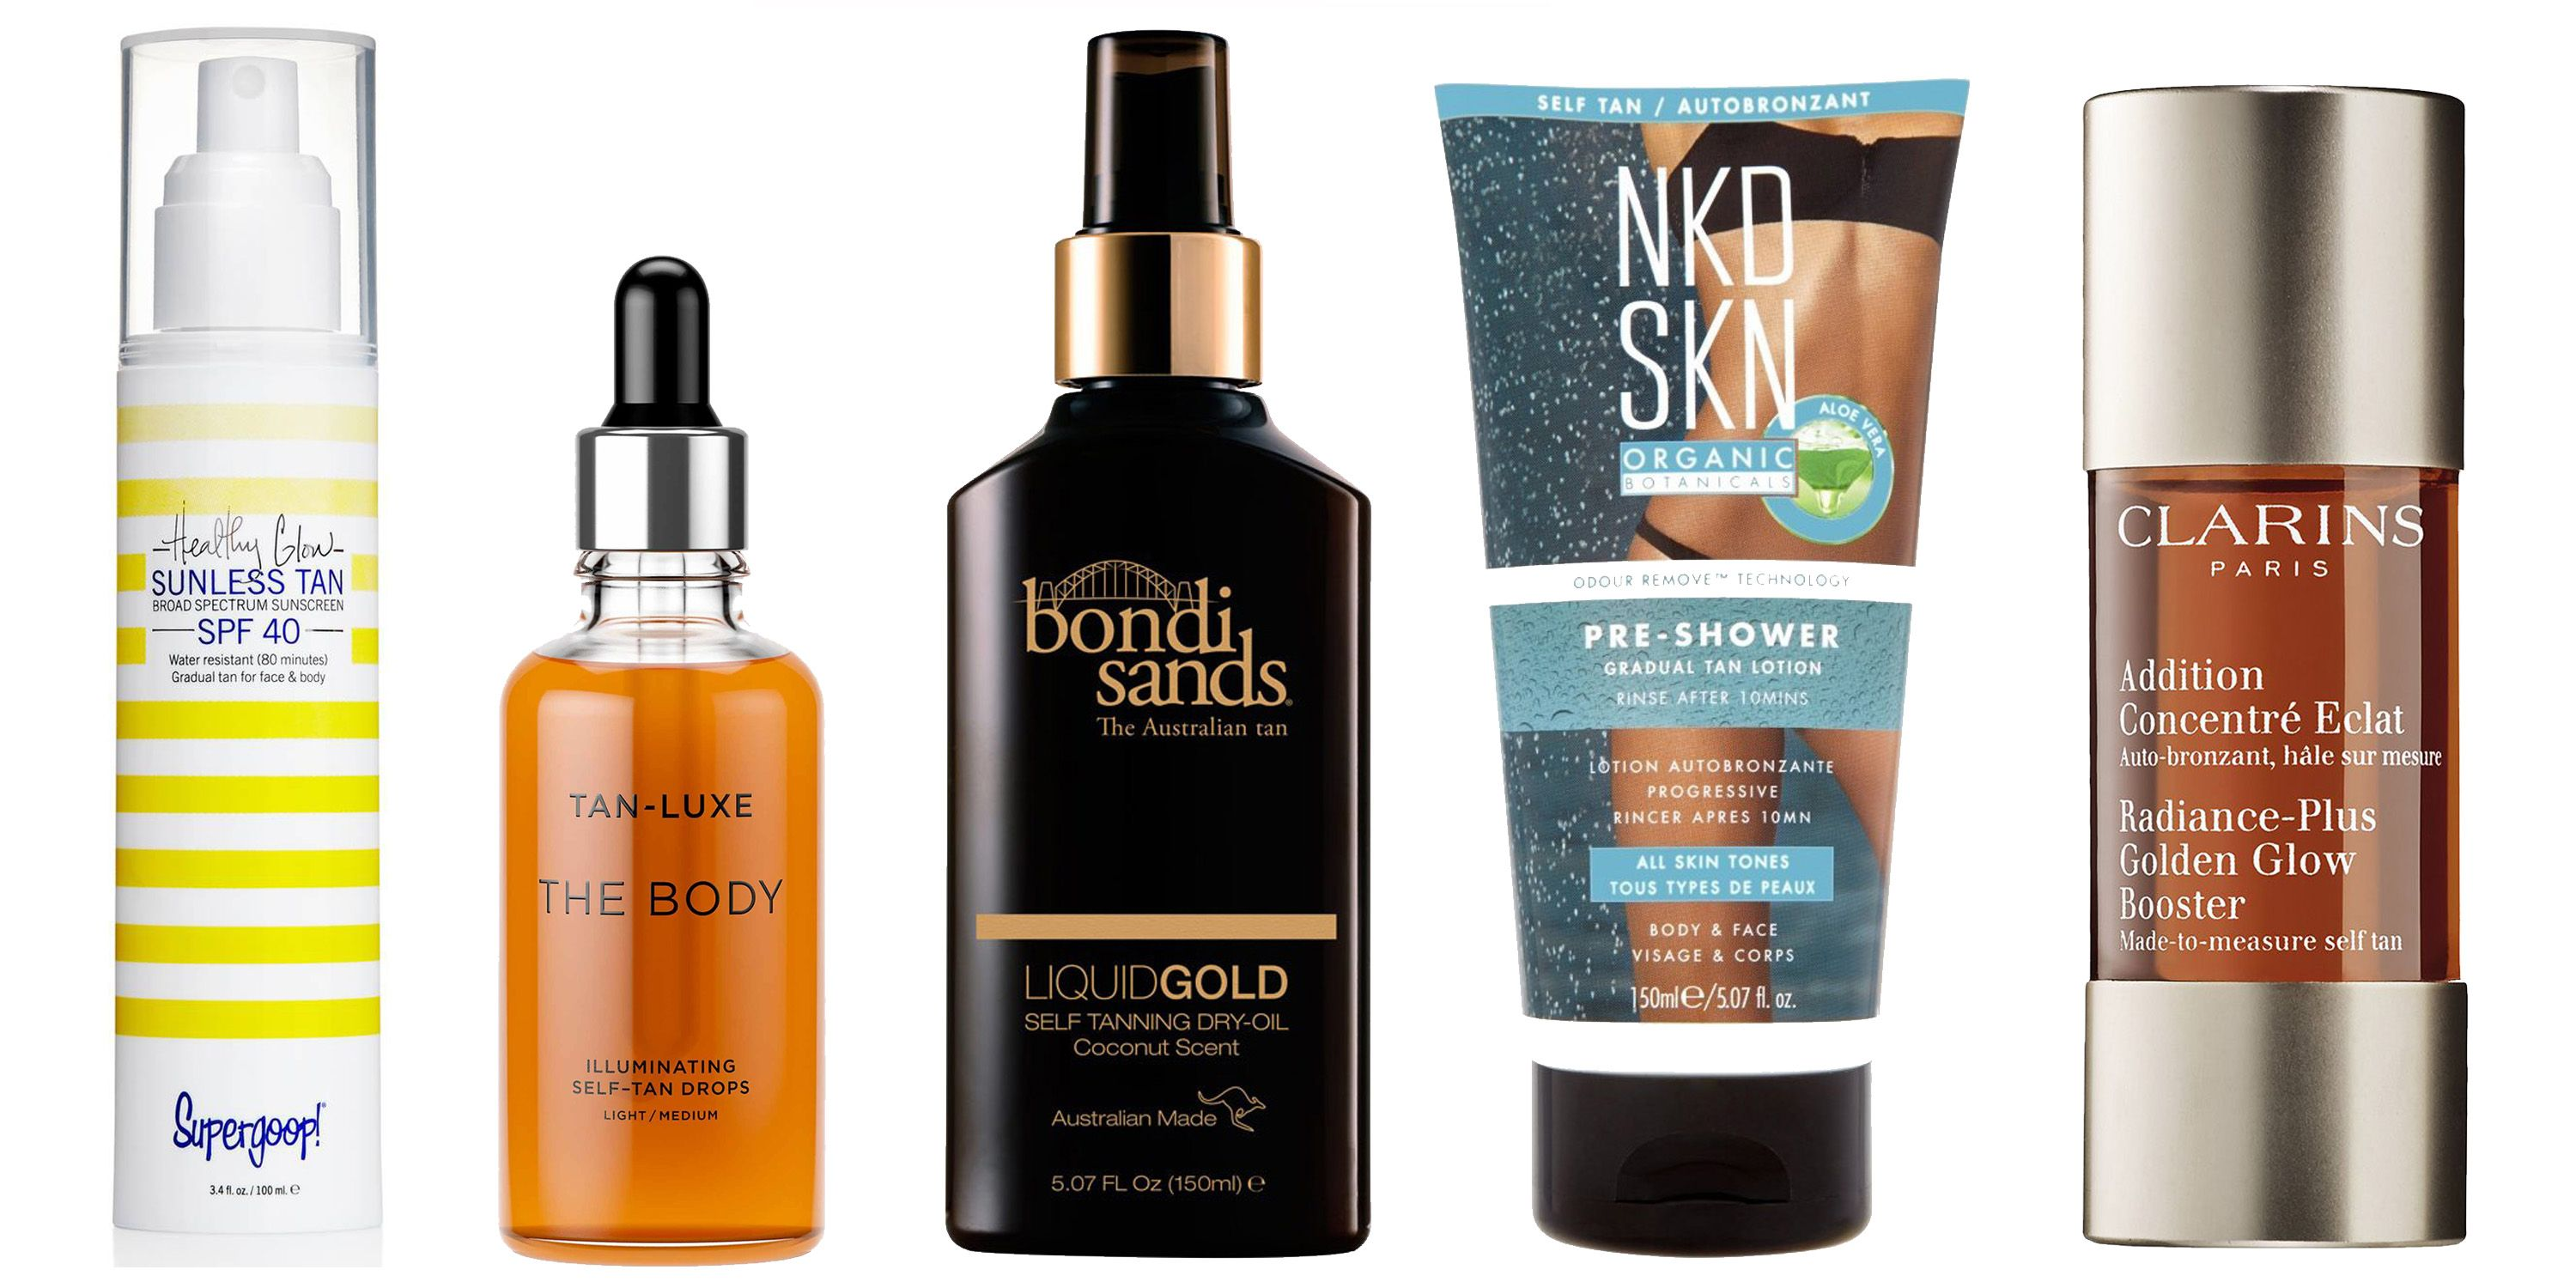 23 Best Self Tanners 2018 - Top Sunless Tanners for Face and Body 2c1422885f3f